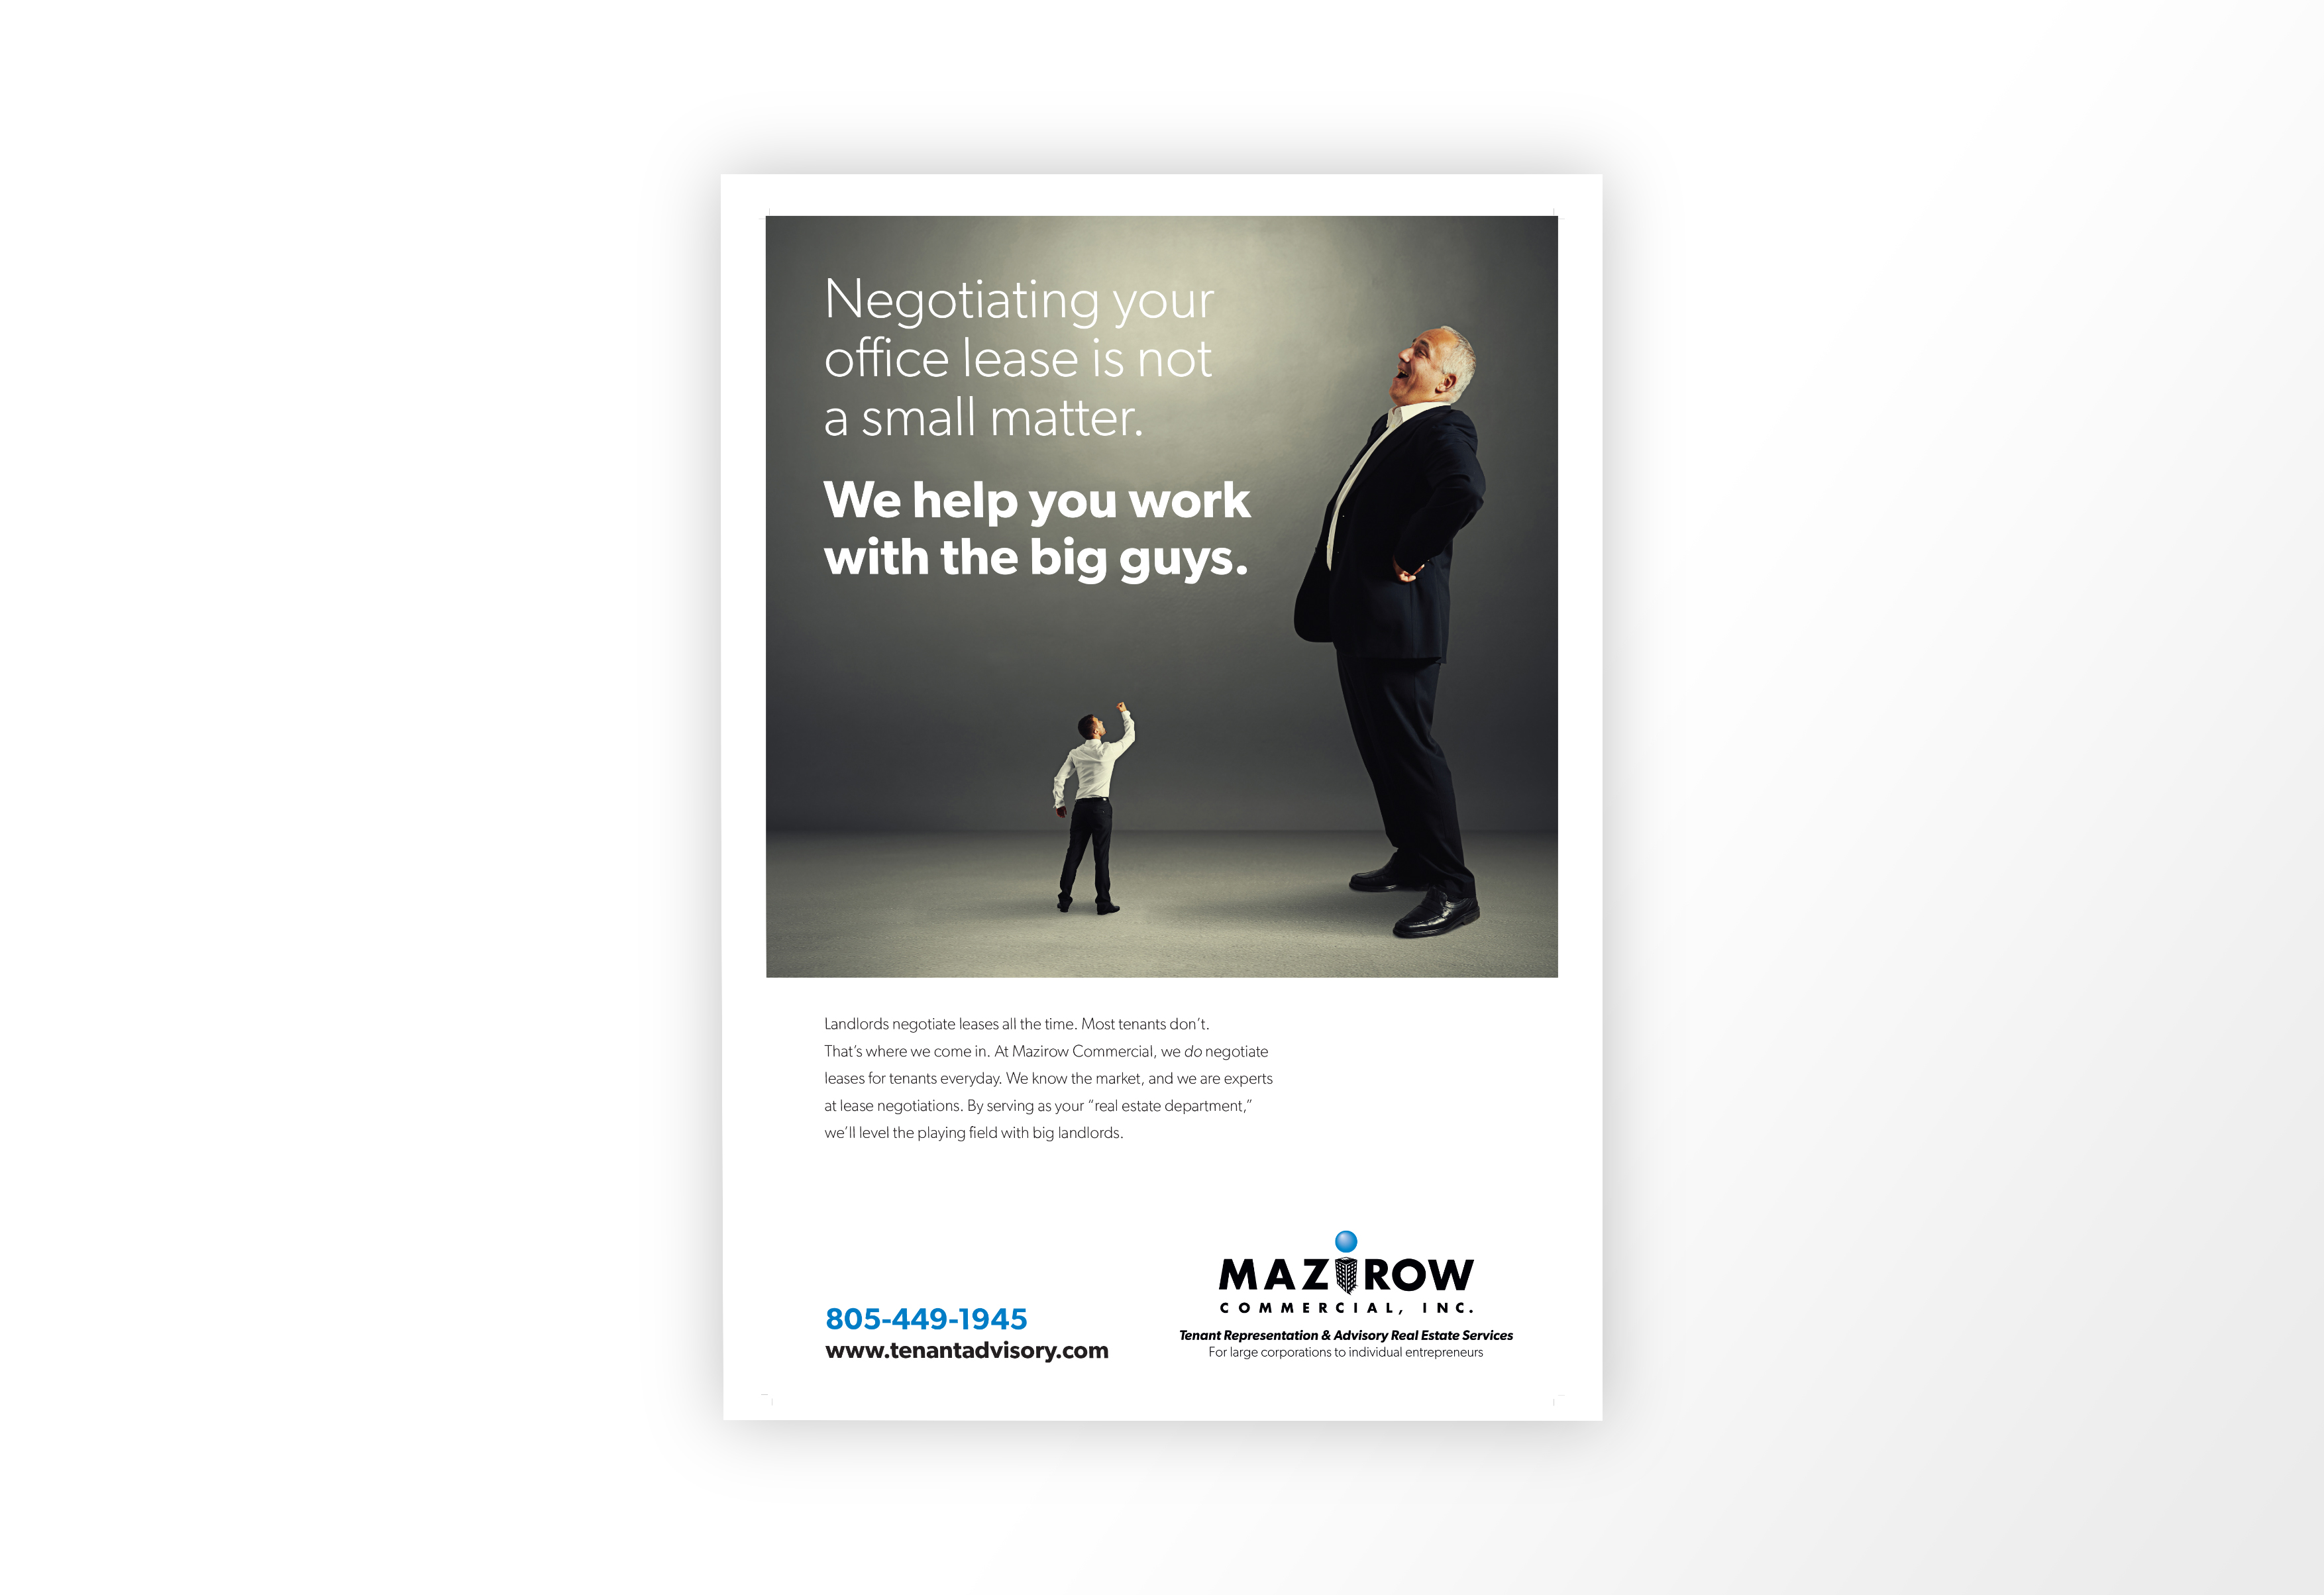 http://www.newmangrace.com/project/mazirow-commercial-inc/